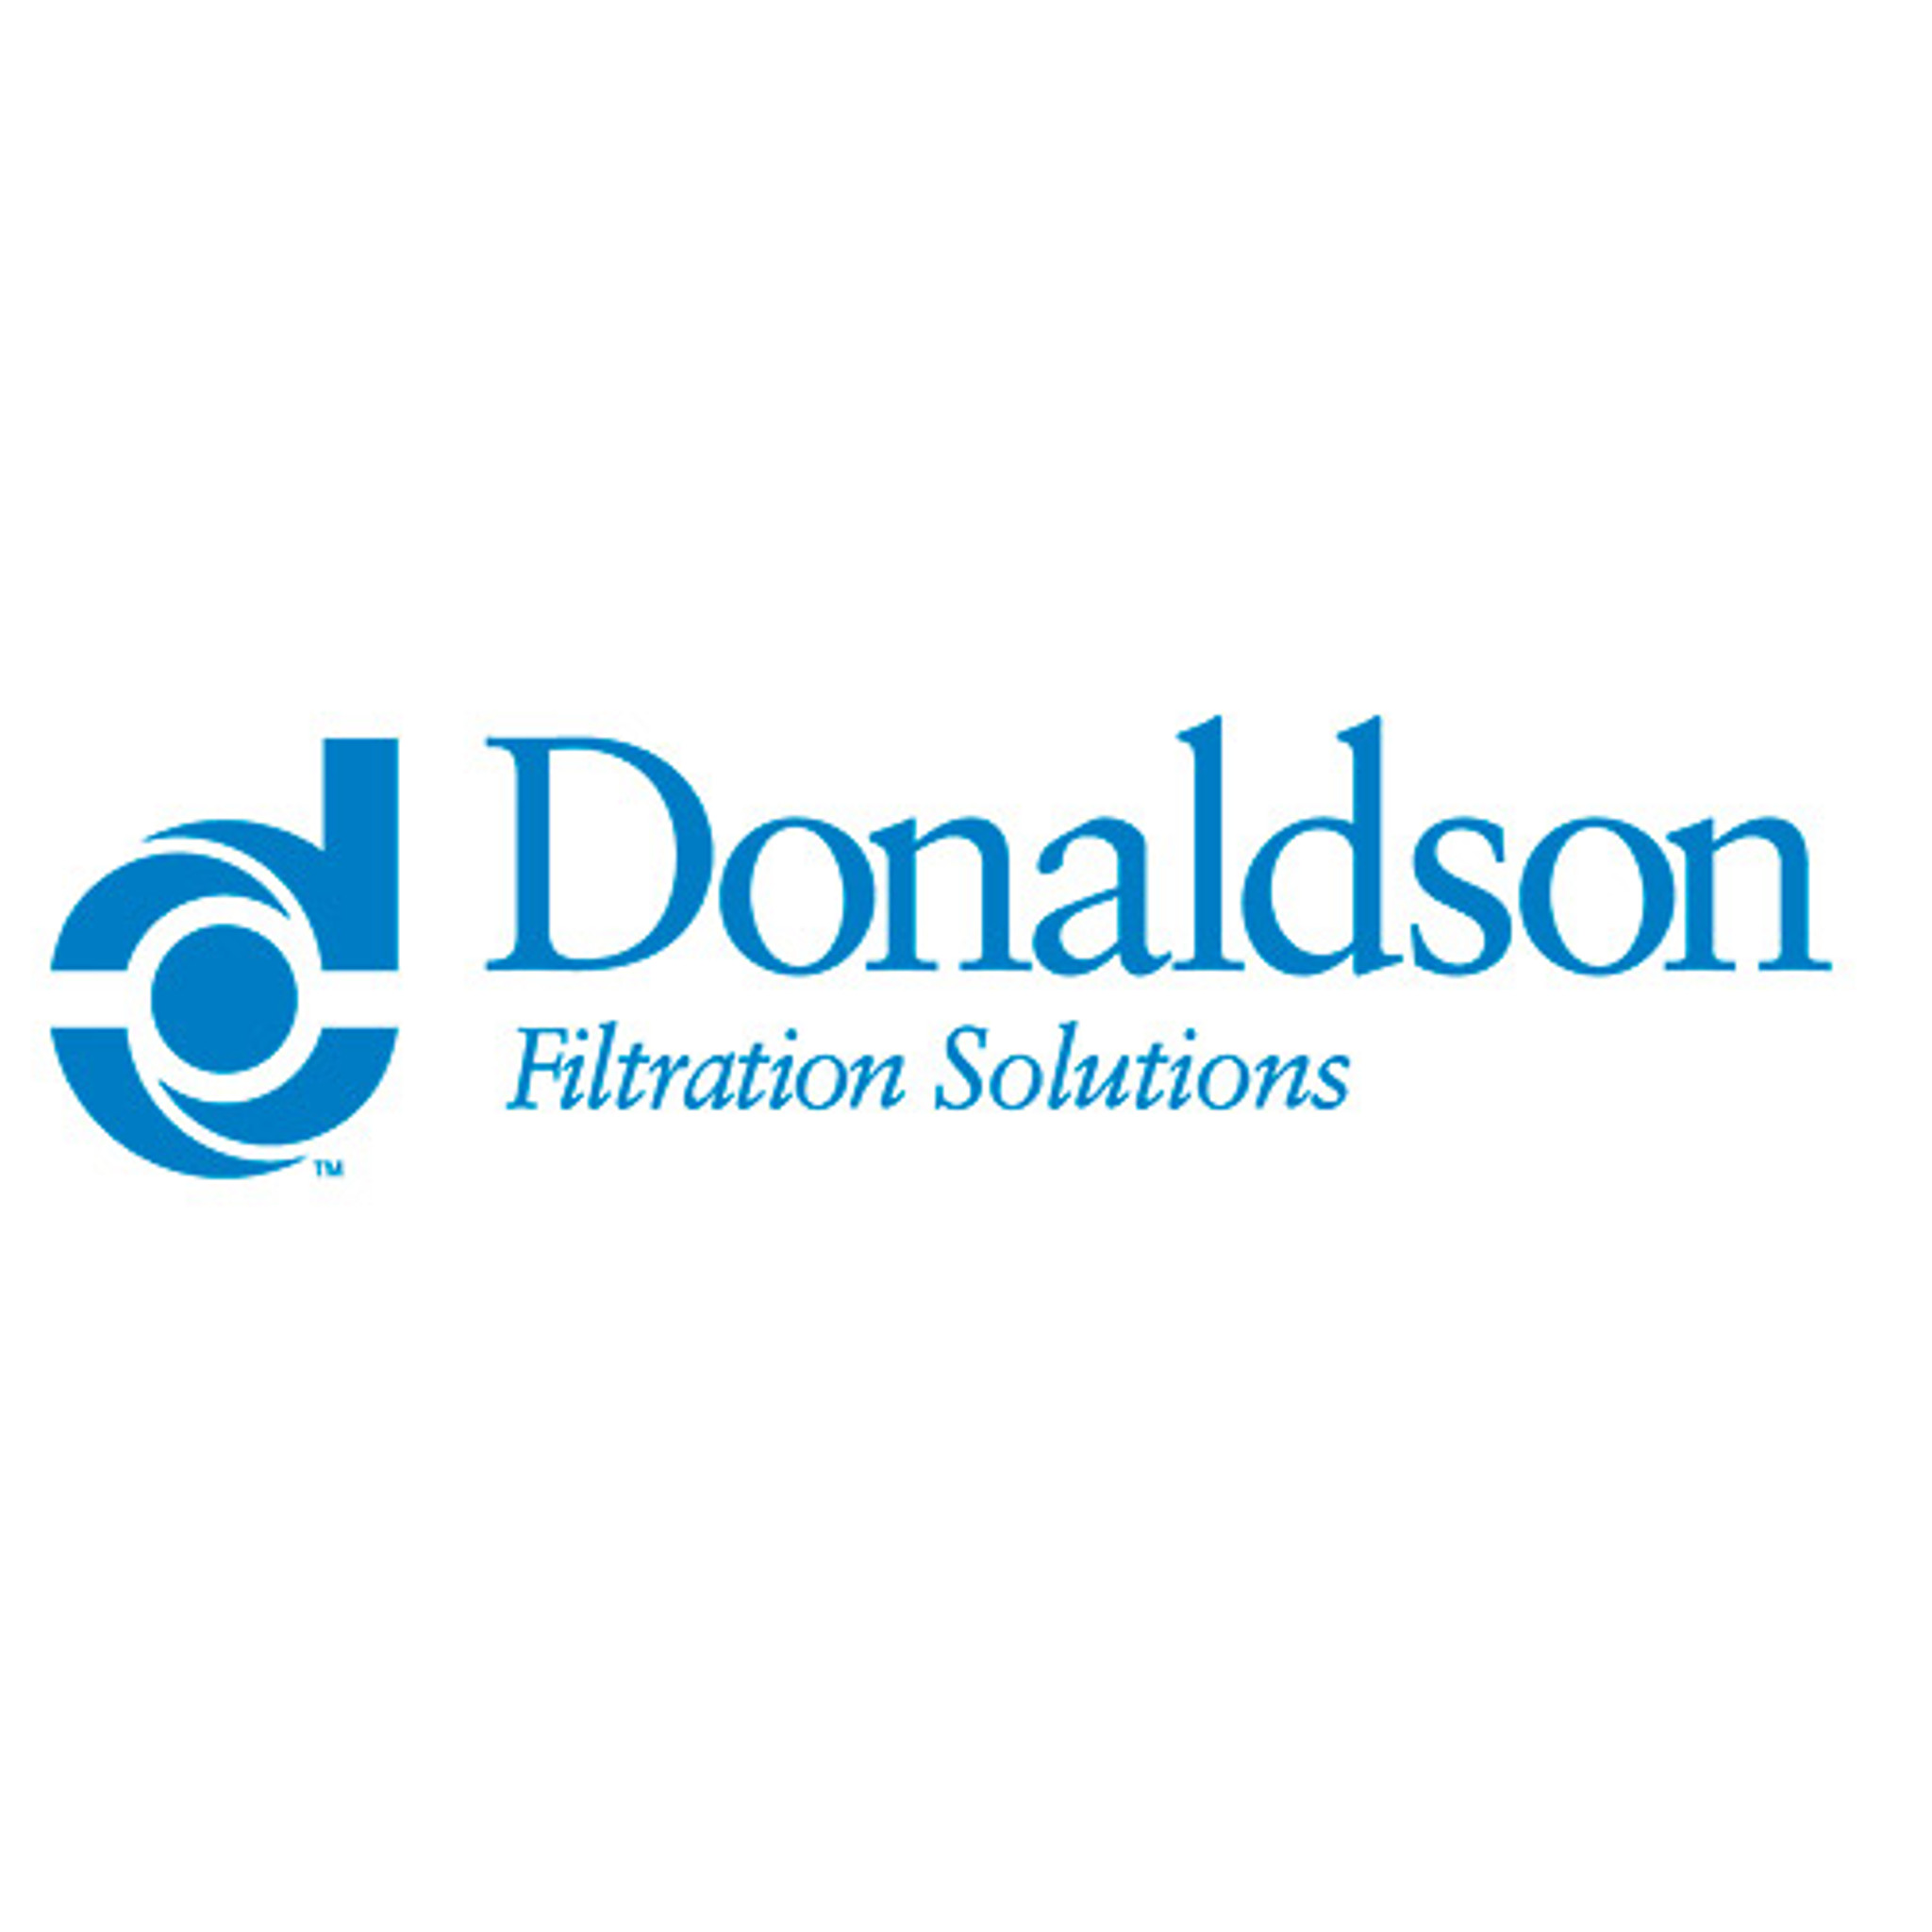 P166086 Donaldson HEAD ASSEMBLY, HMK04 DURAMAX